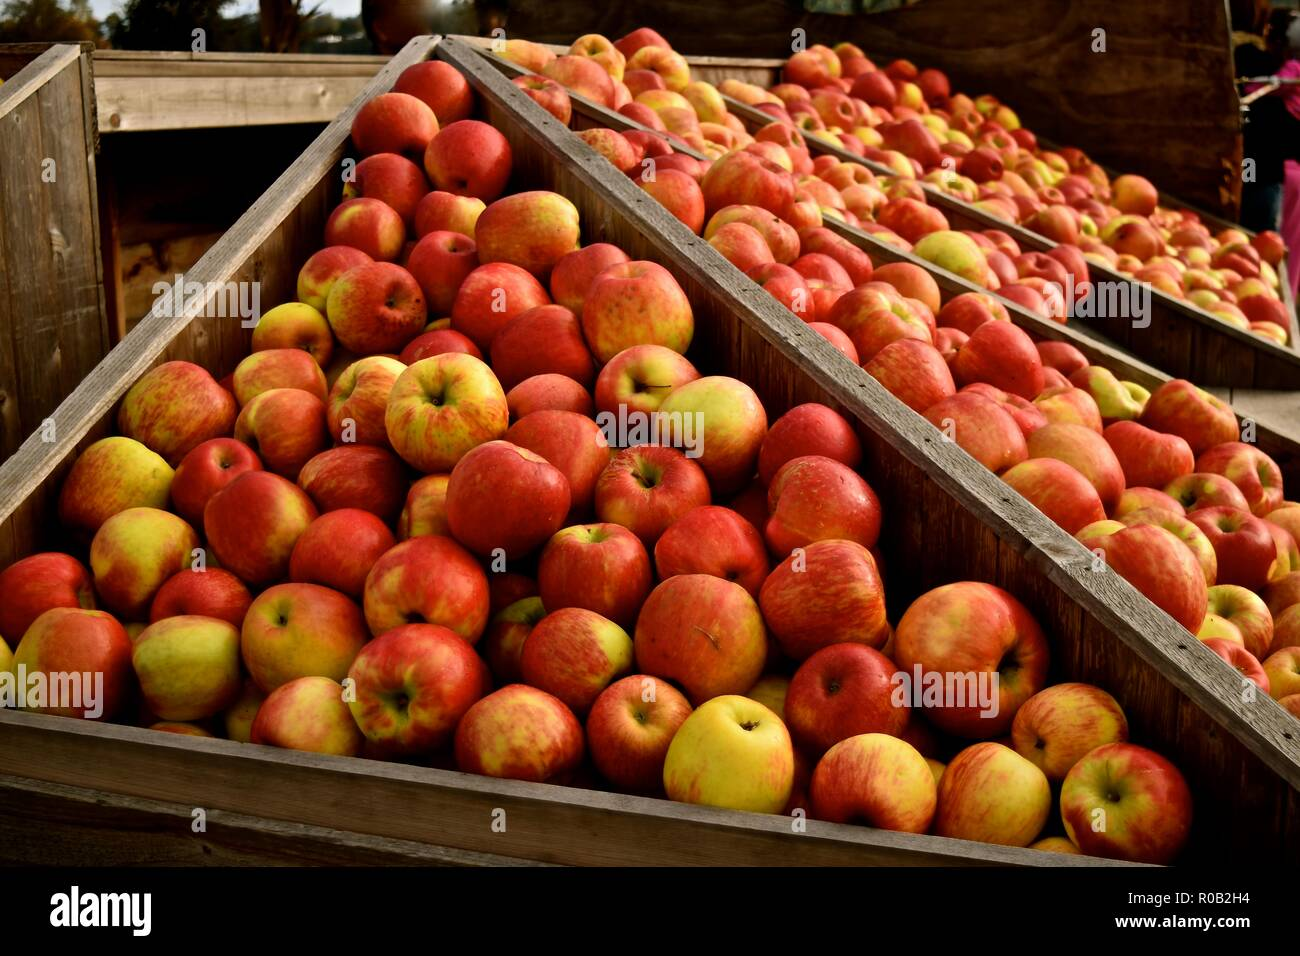 Autumn season is harvest time for apples in Washington state. Farms in Snohomish celebrate by opening up their farms to the public. - Stock Image